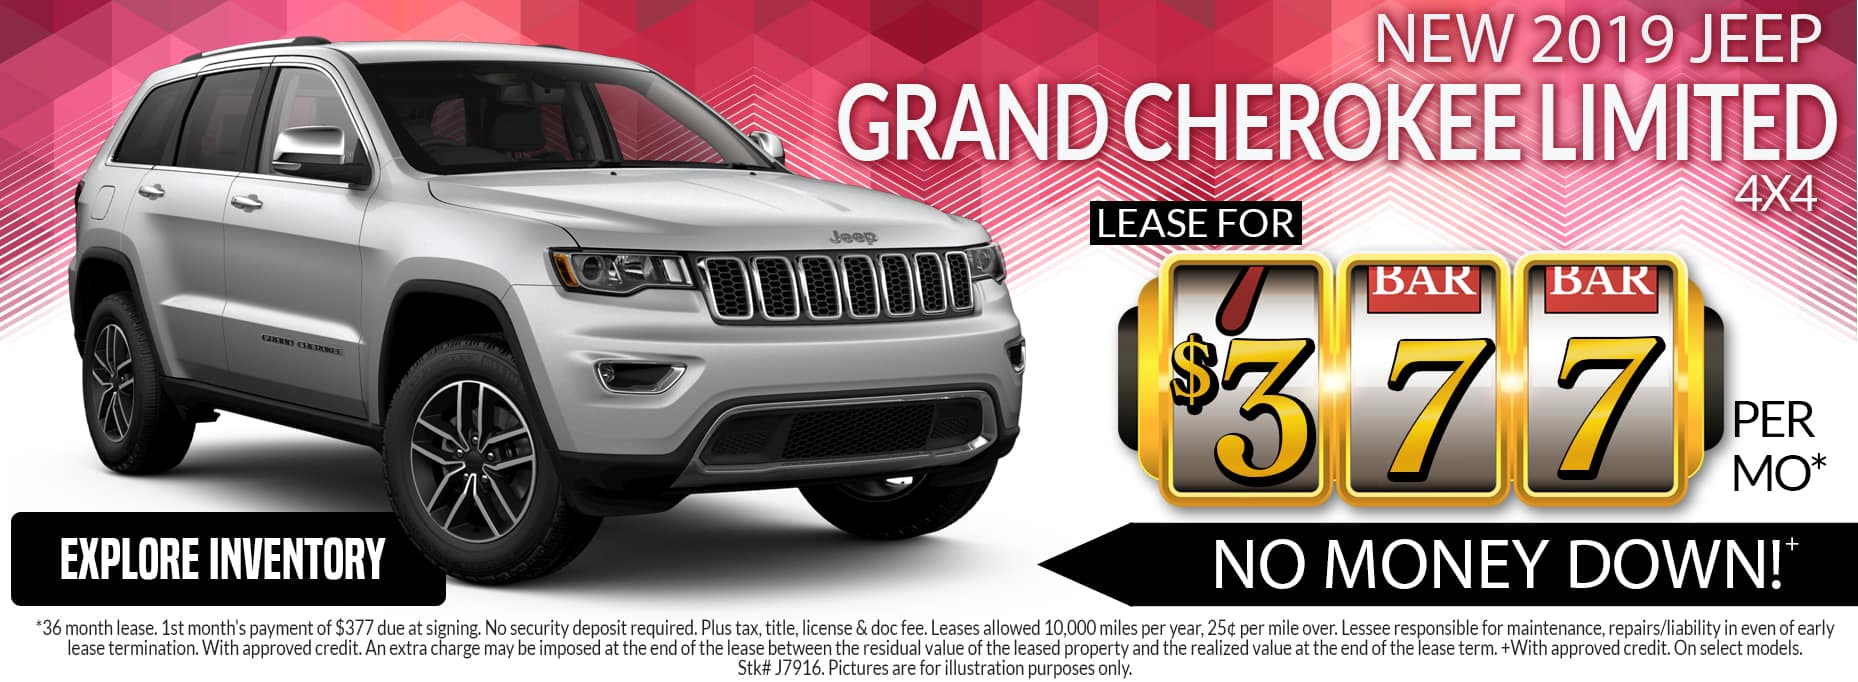 St. Chales 2019 Jeep Grand Cherokee